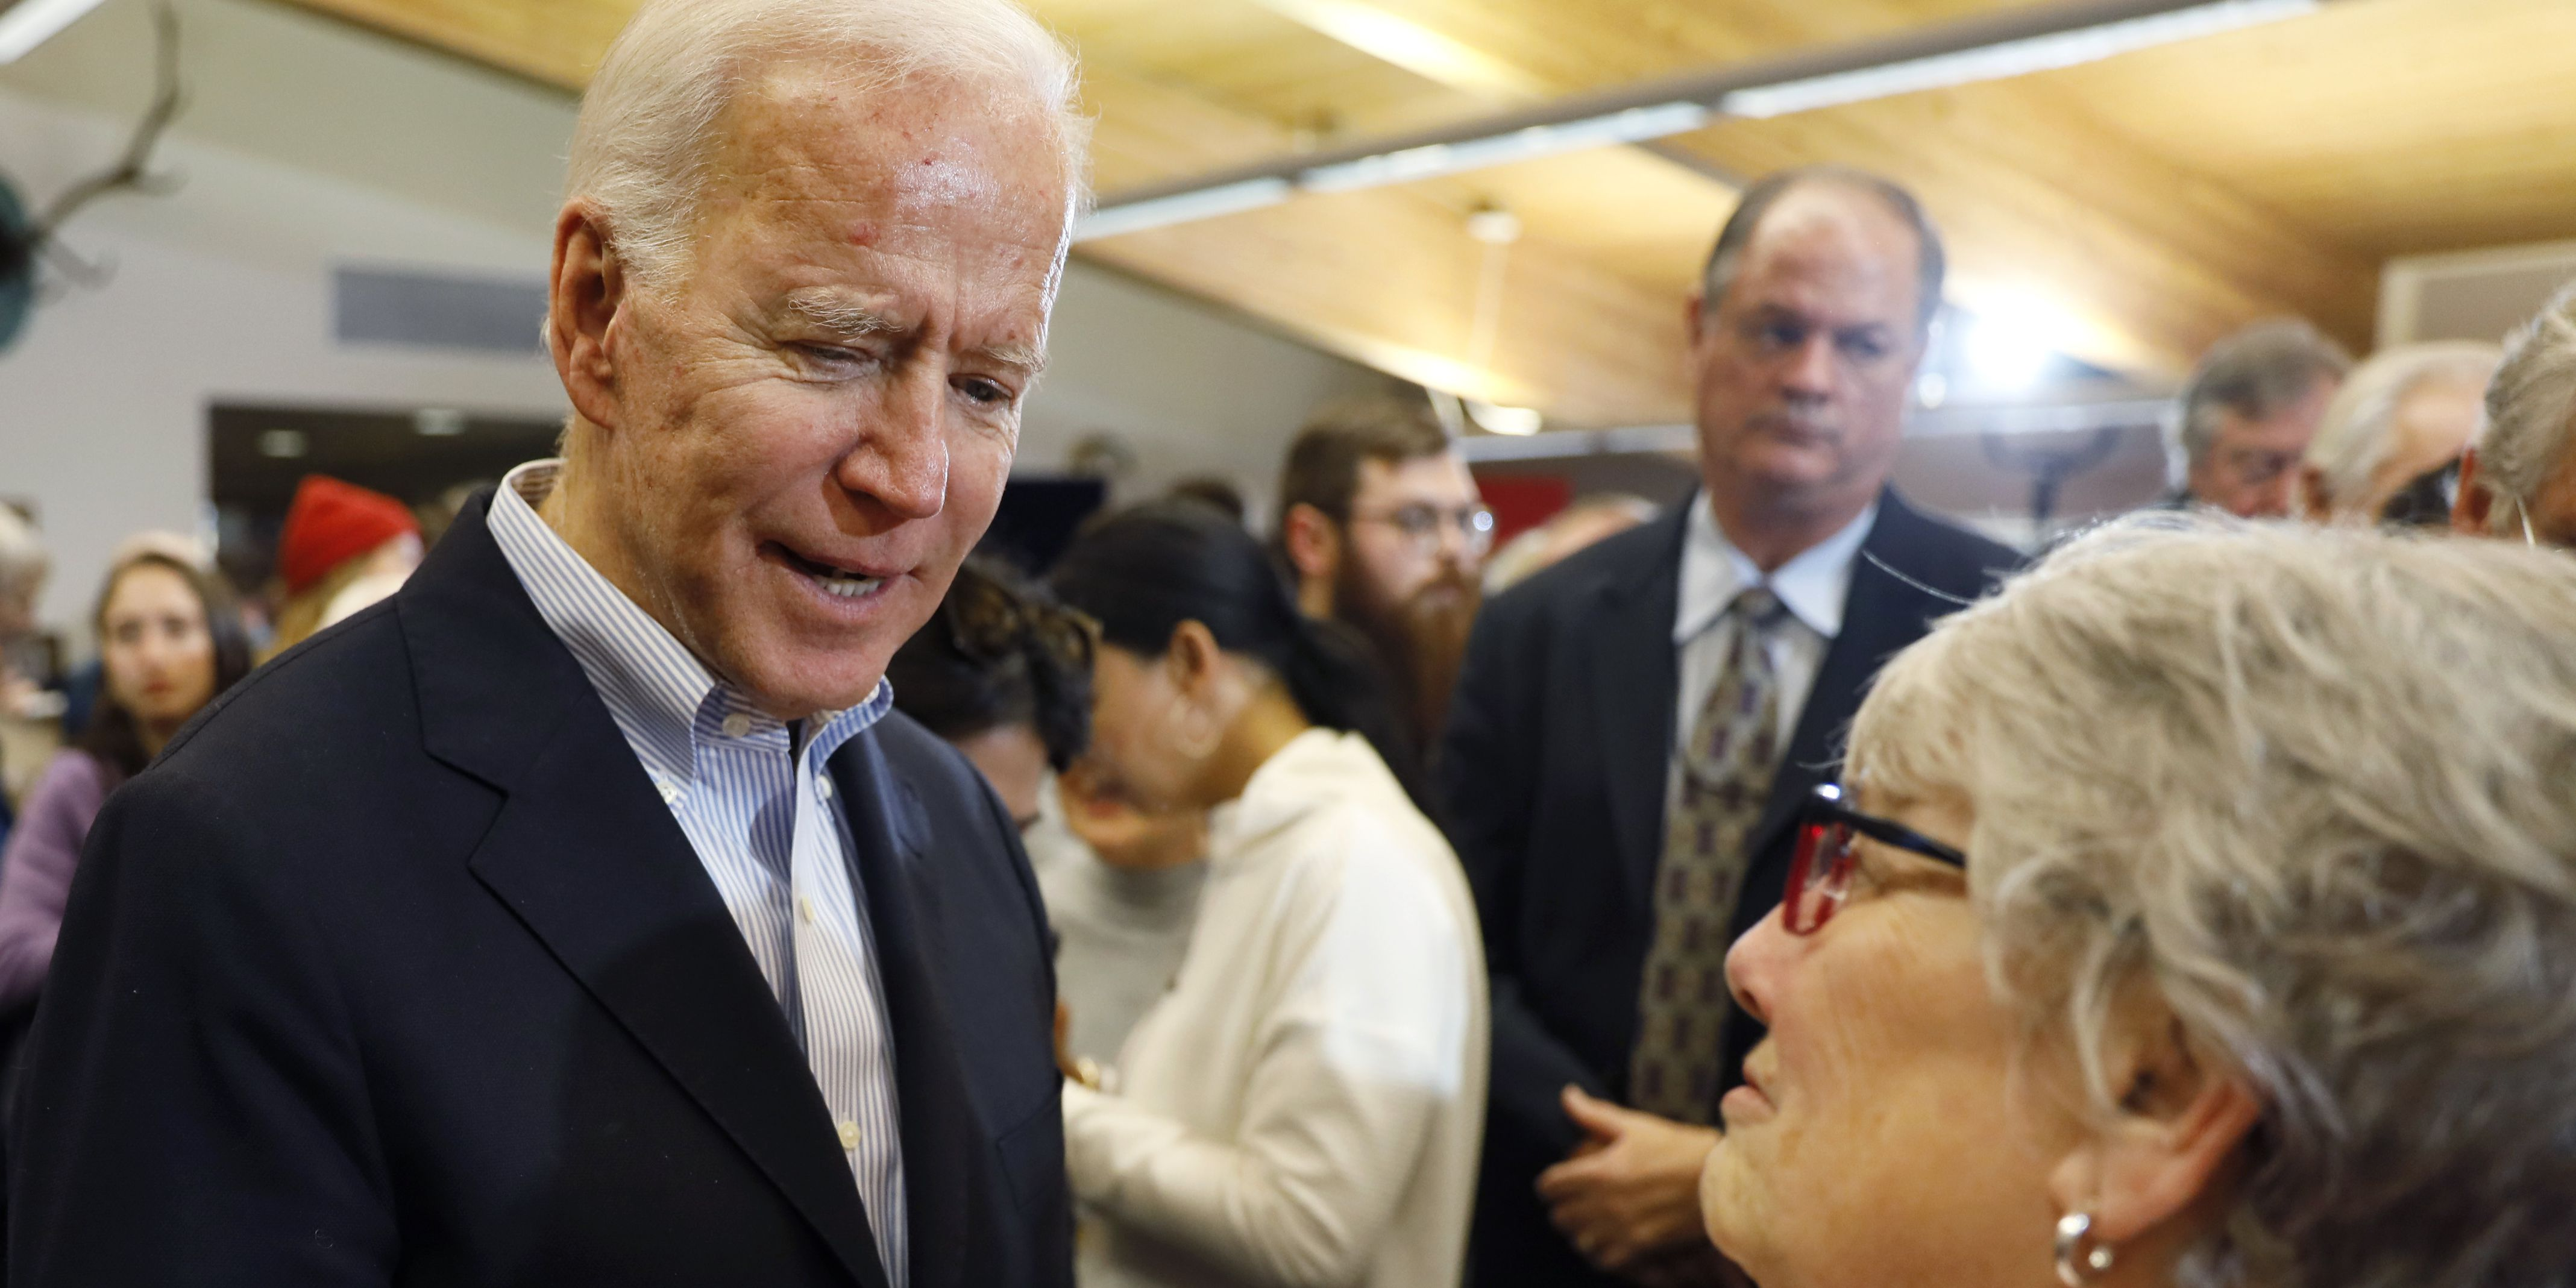 Joe Biden sees fundraising improvement after rough summer